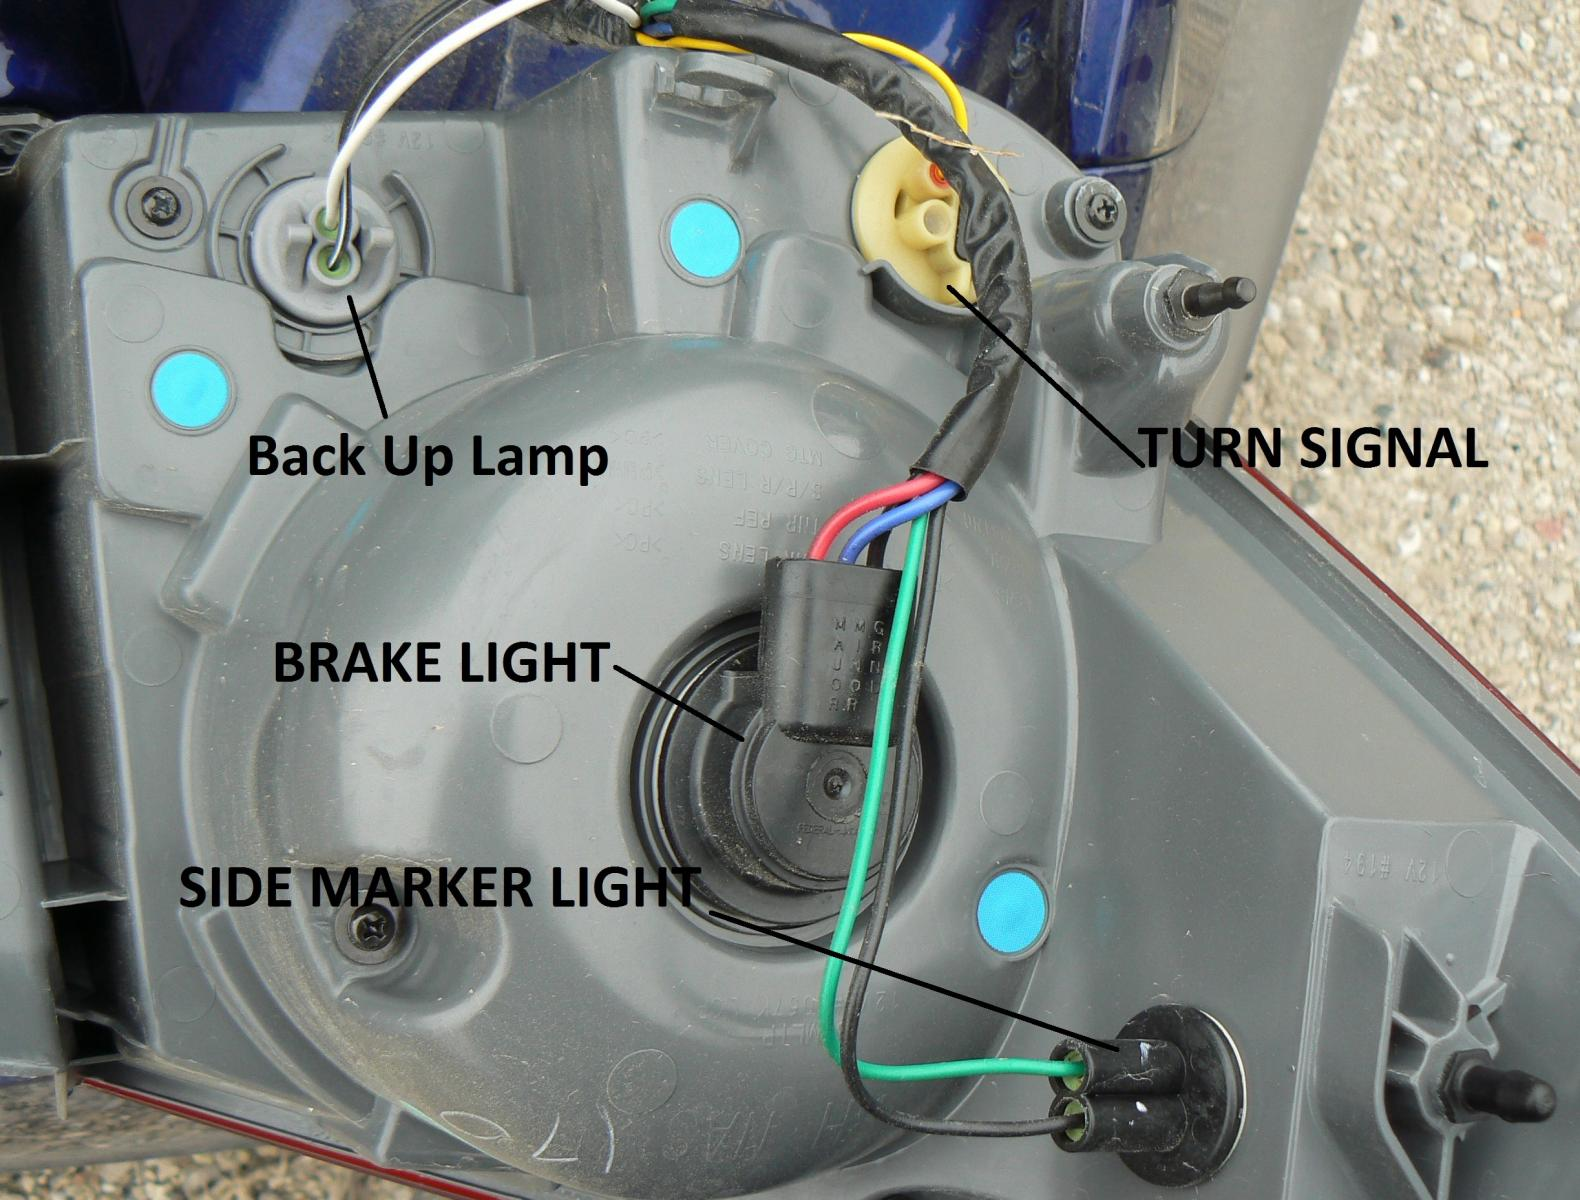 How To Install A Back Up Camera Cheaply